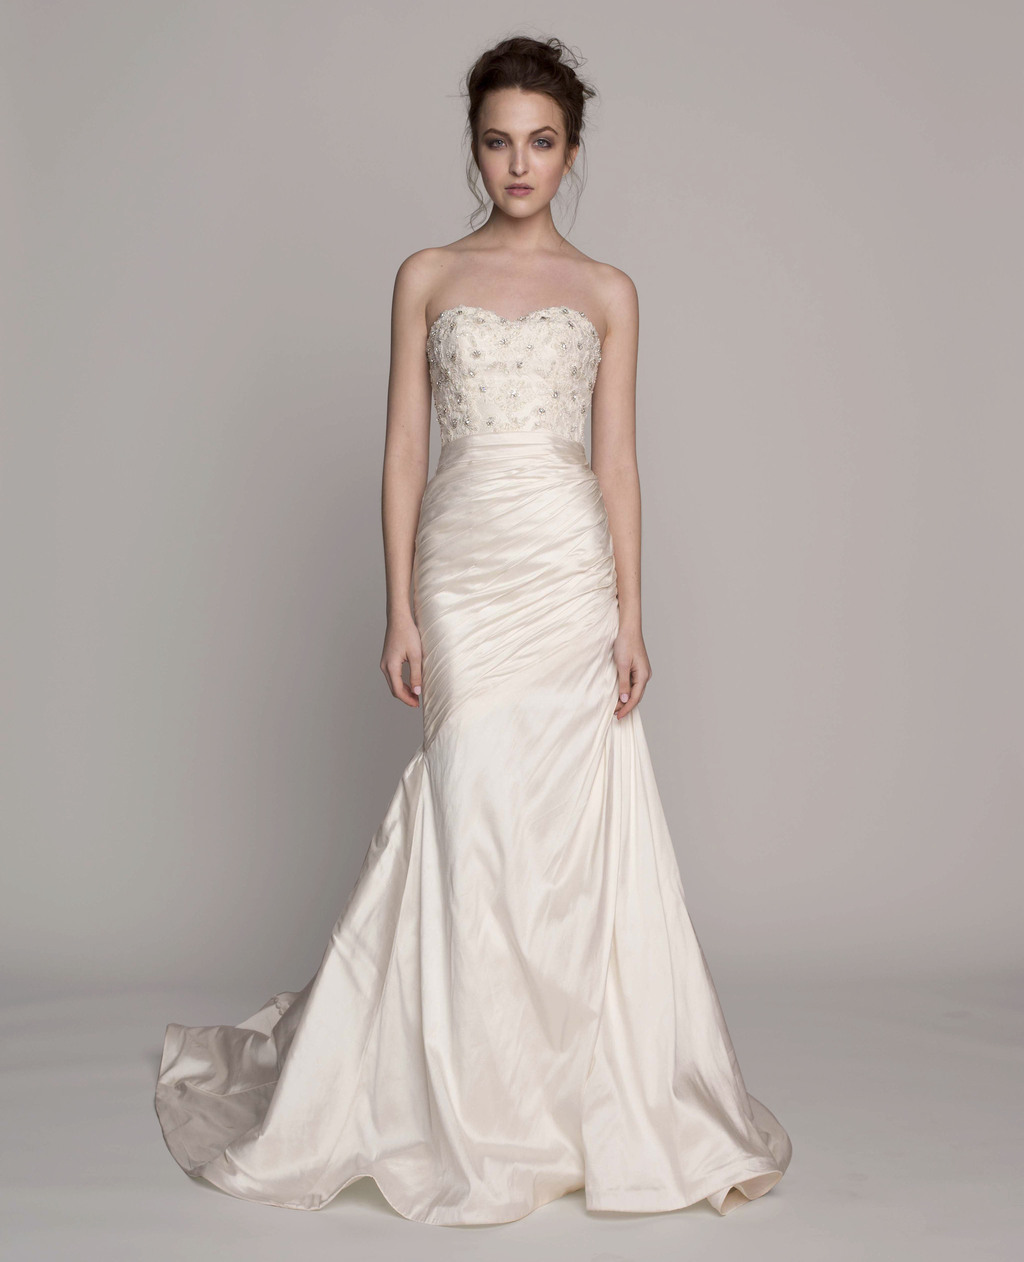 Kelly-faetanini-wedding-dress-2014-spring-bridal-gown-collection-melissa-front.full